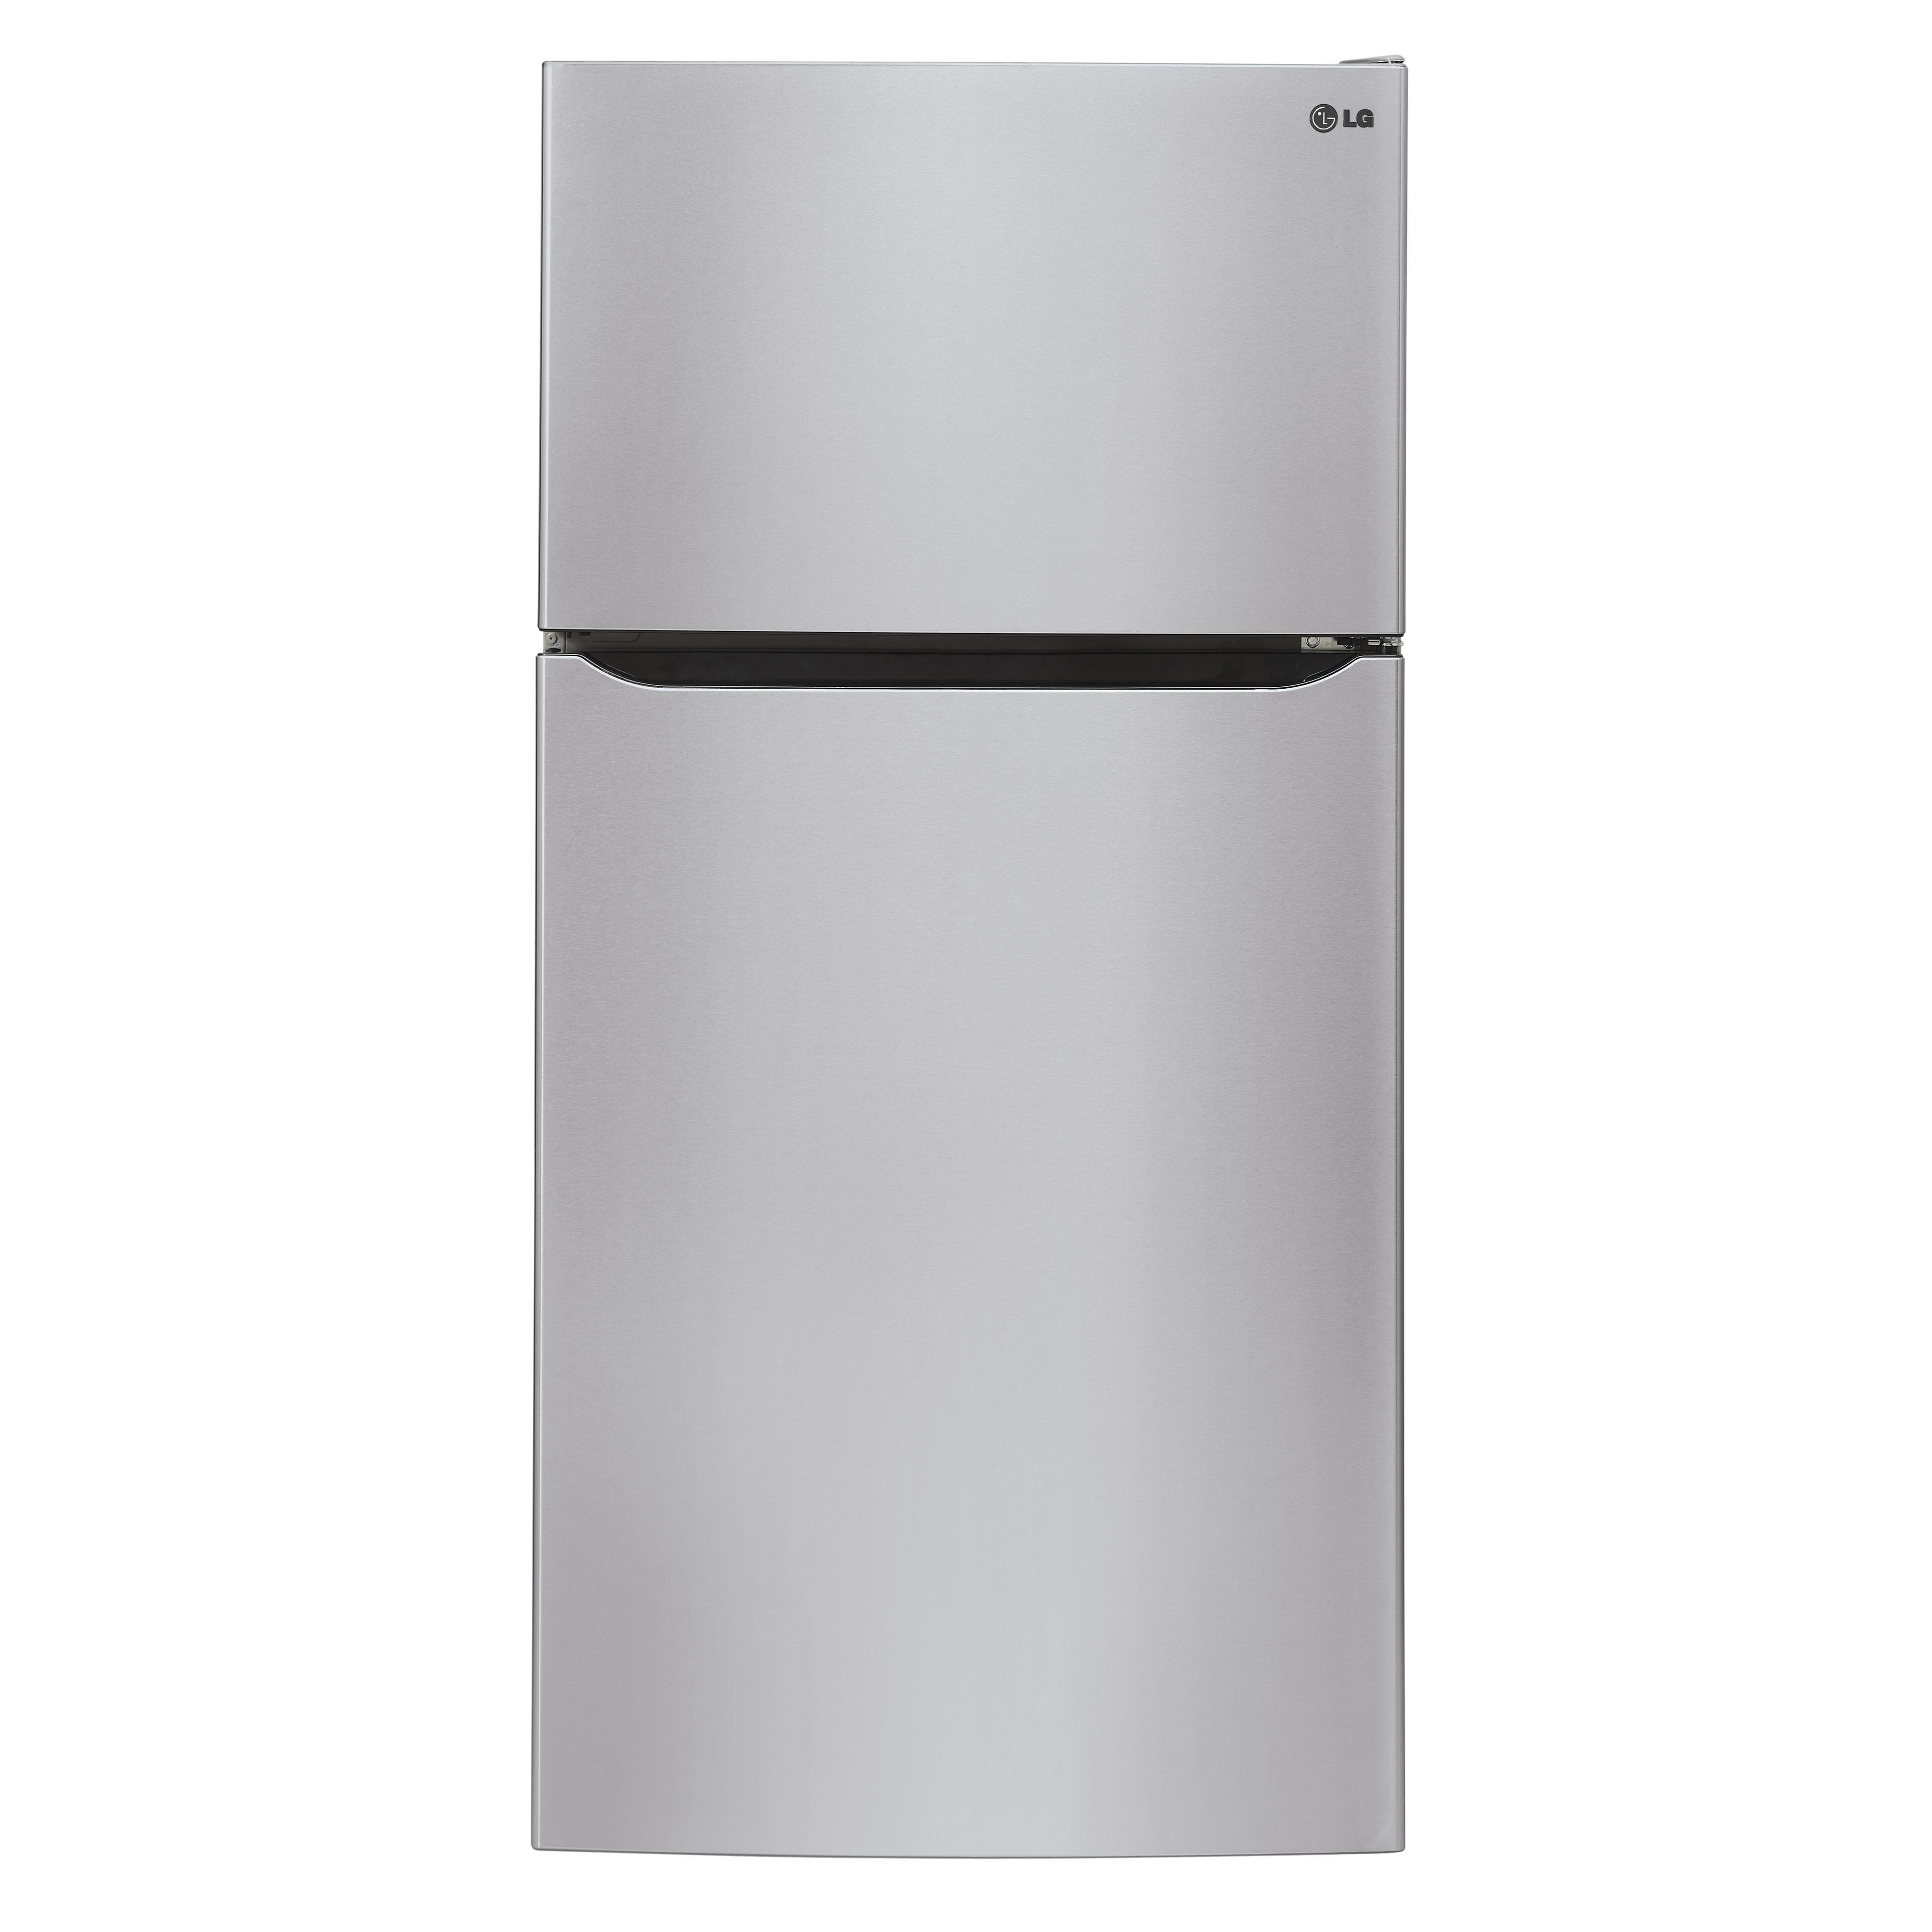 LG Appliances Top-Freezer Refrigerator 20 cu. ft. Wide Top Freezer Refrigerator - Item Number: LTCS20220S